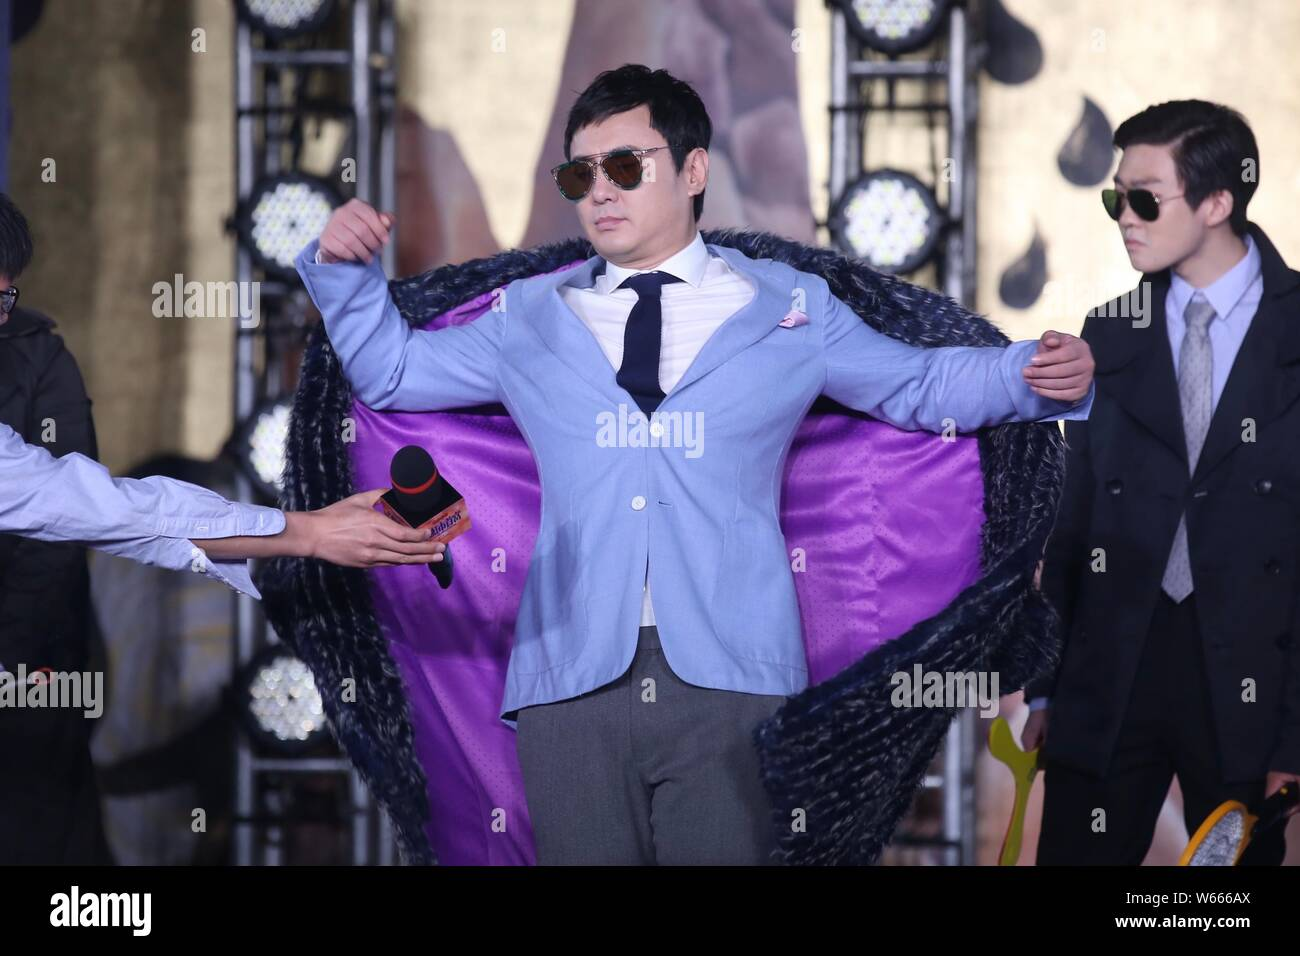 File Chinese Actor Shen Teng Attends A Press Conference For His Comedy Film Hello Mr Billionaire In Beijing China 11 June 2018 By Far The B Stock Photo Alamy